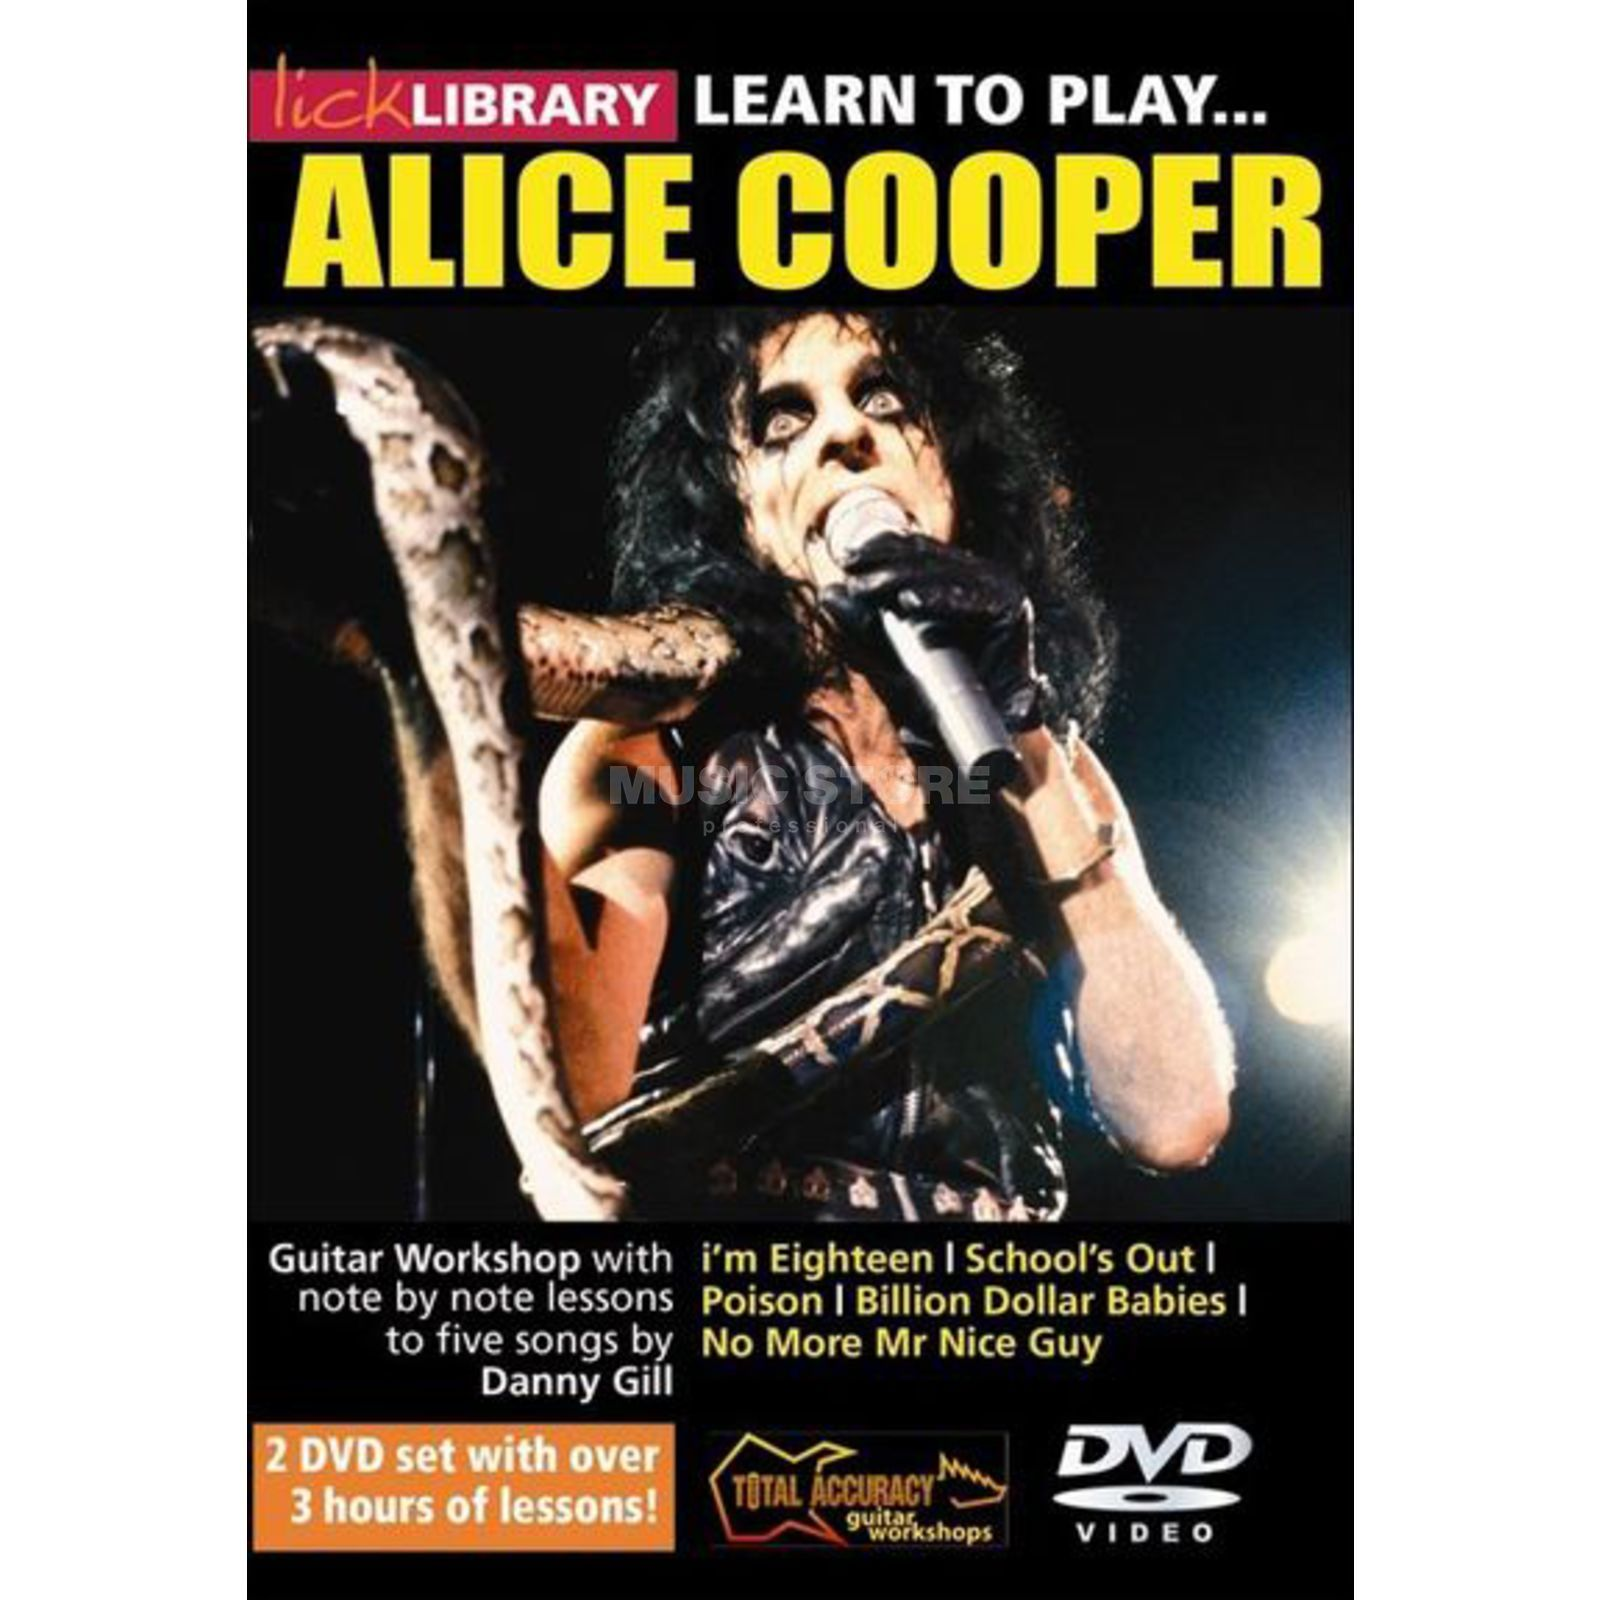 Roadrock International Lick Library: Learn To Play Alice Cooper DVD Product Image